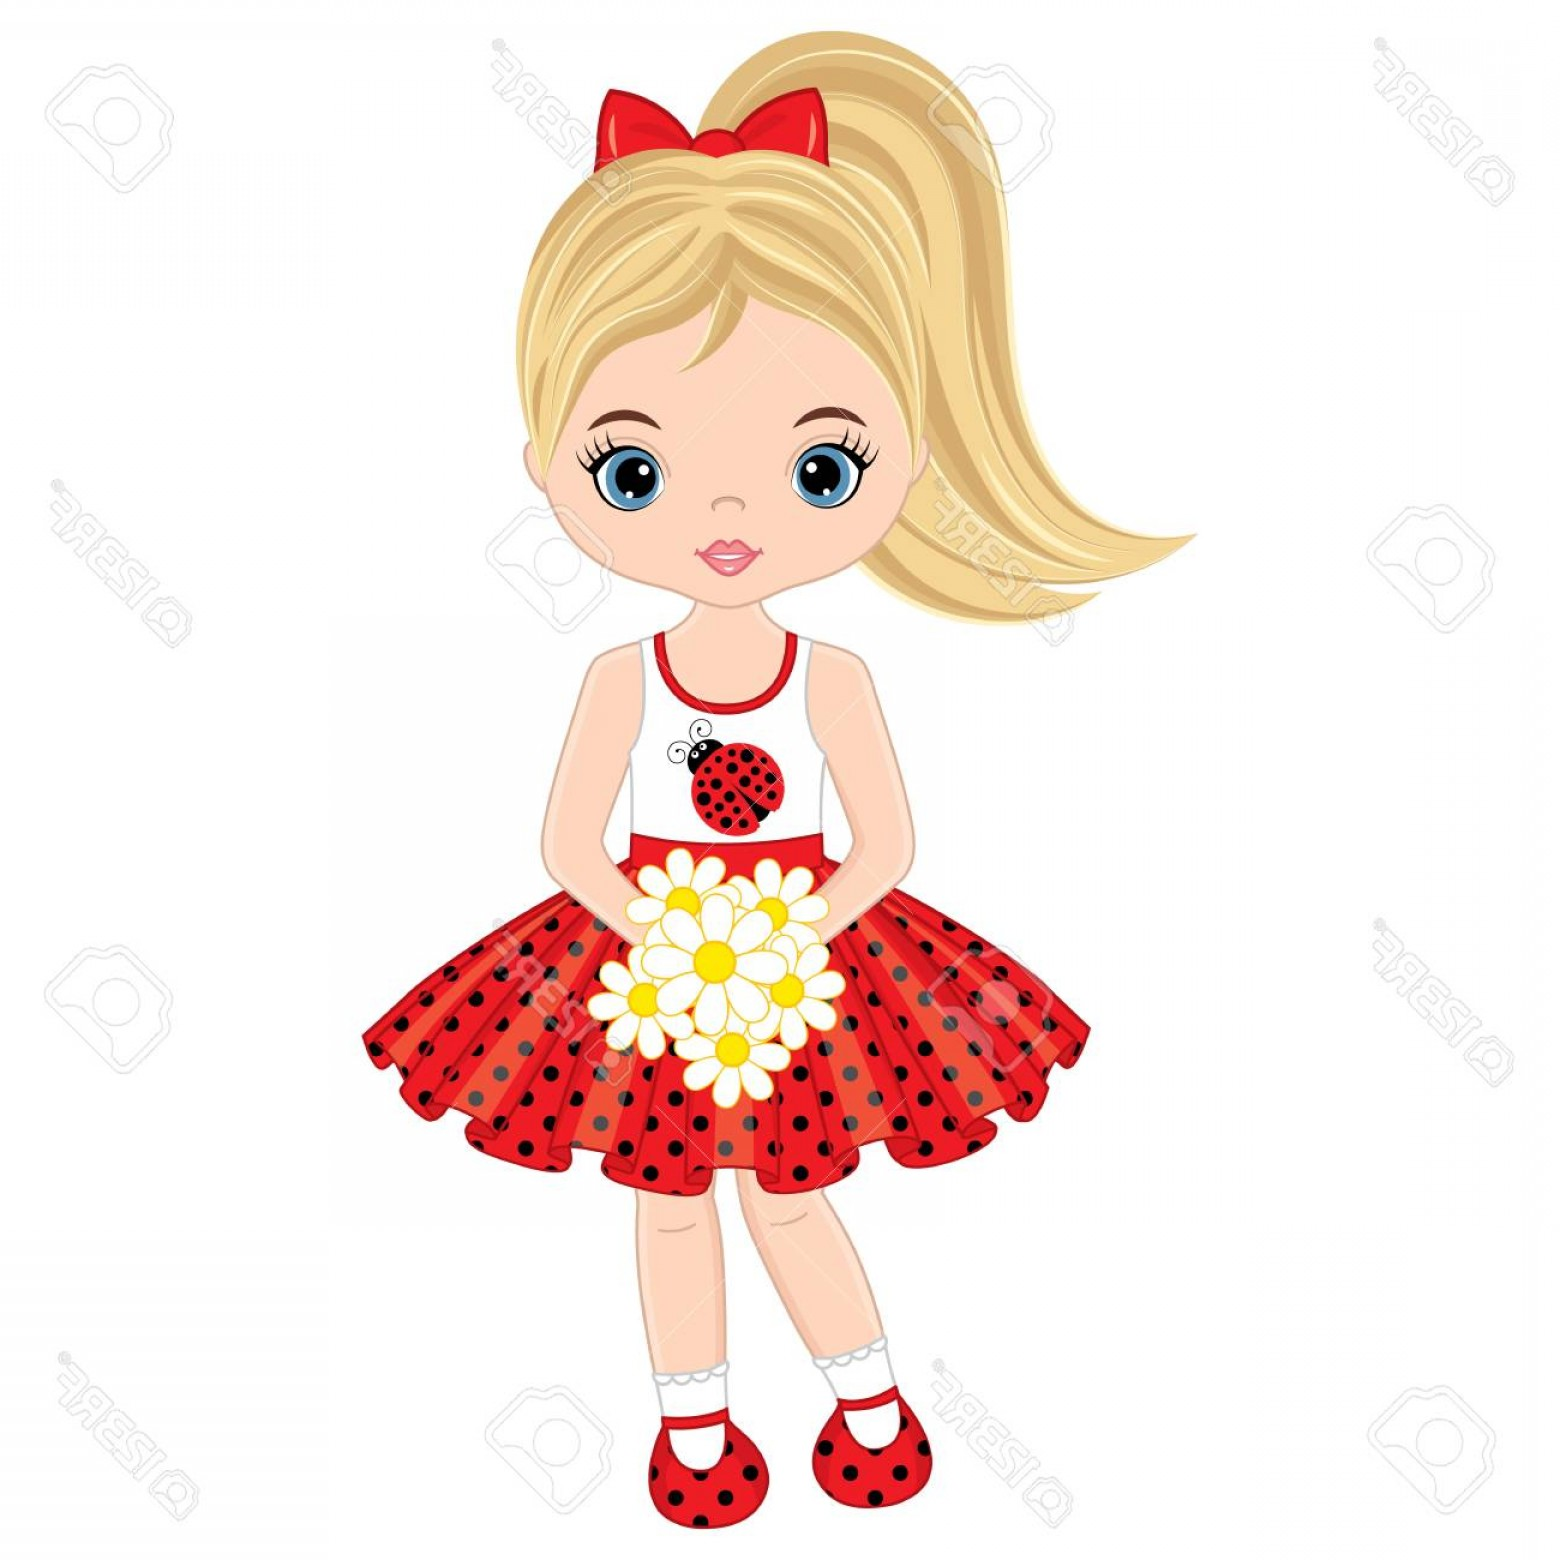 Vector Flower Girl Dresses: Photostock Vector Vector Cute Little Girl With Flowers Vector Little Girl In Polka Dot Dress Little Girl Vector Illust